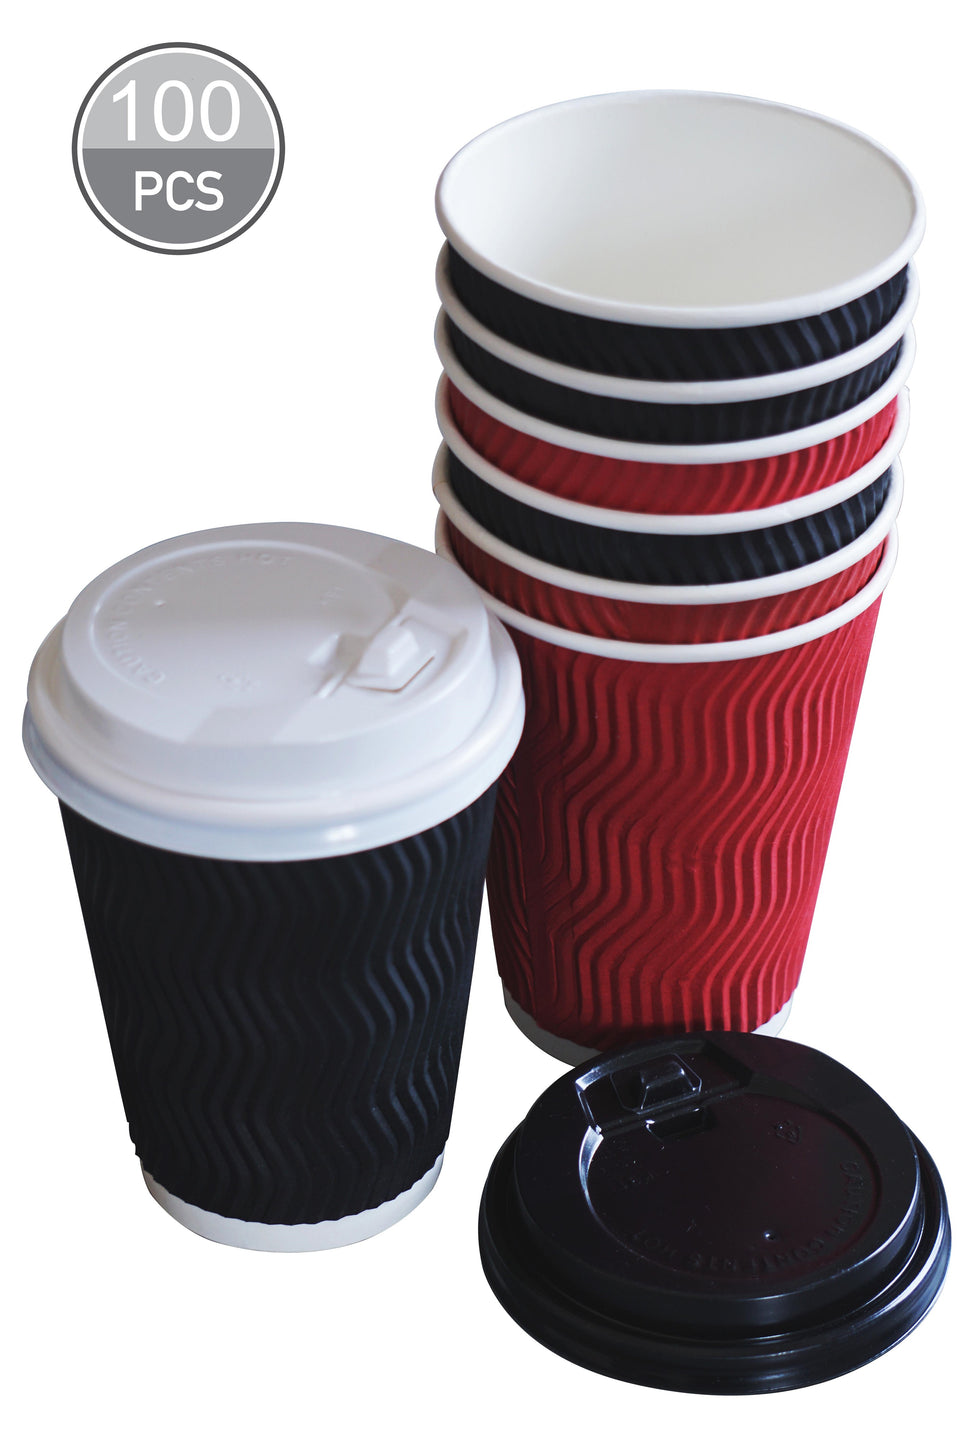 12 oz coffee cups with lids